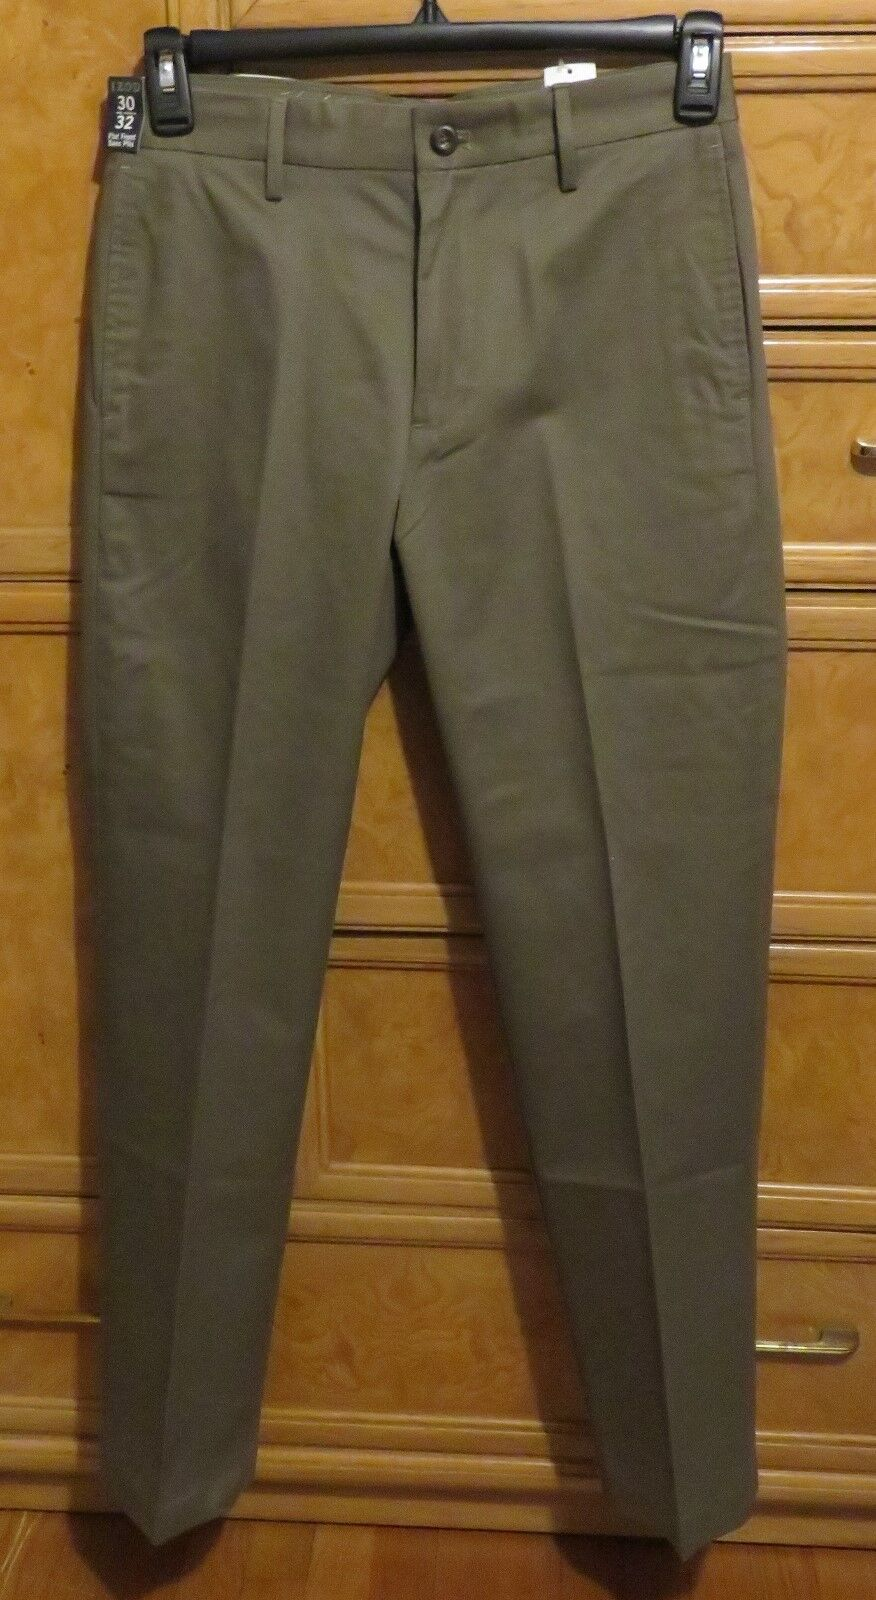 Men's IZOD Khaki pants no iron slim fit size 30 x 32 brand new NWT